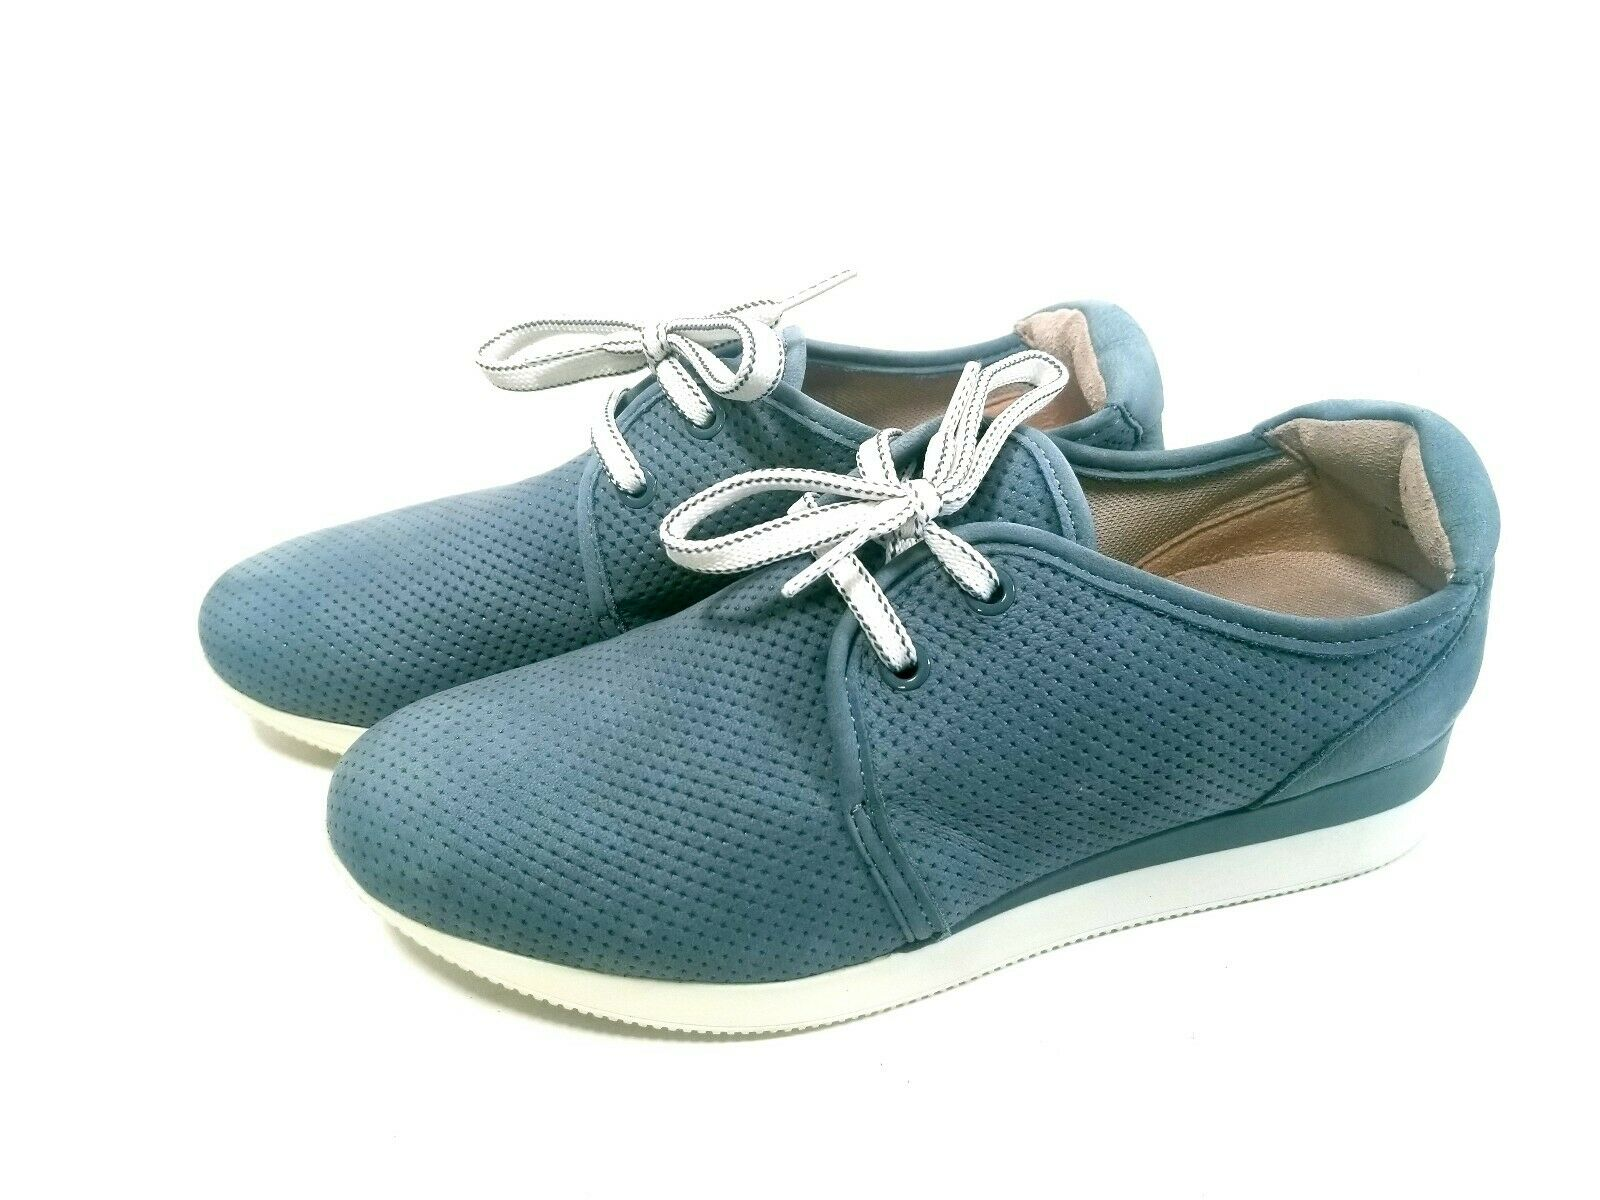 Naturalizer Womens Jaque bluee Walking shoes Size 8 8N